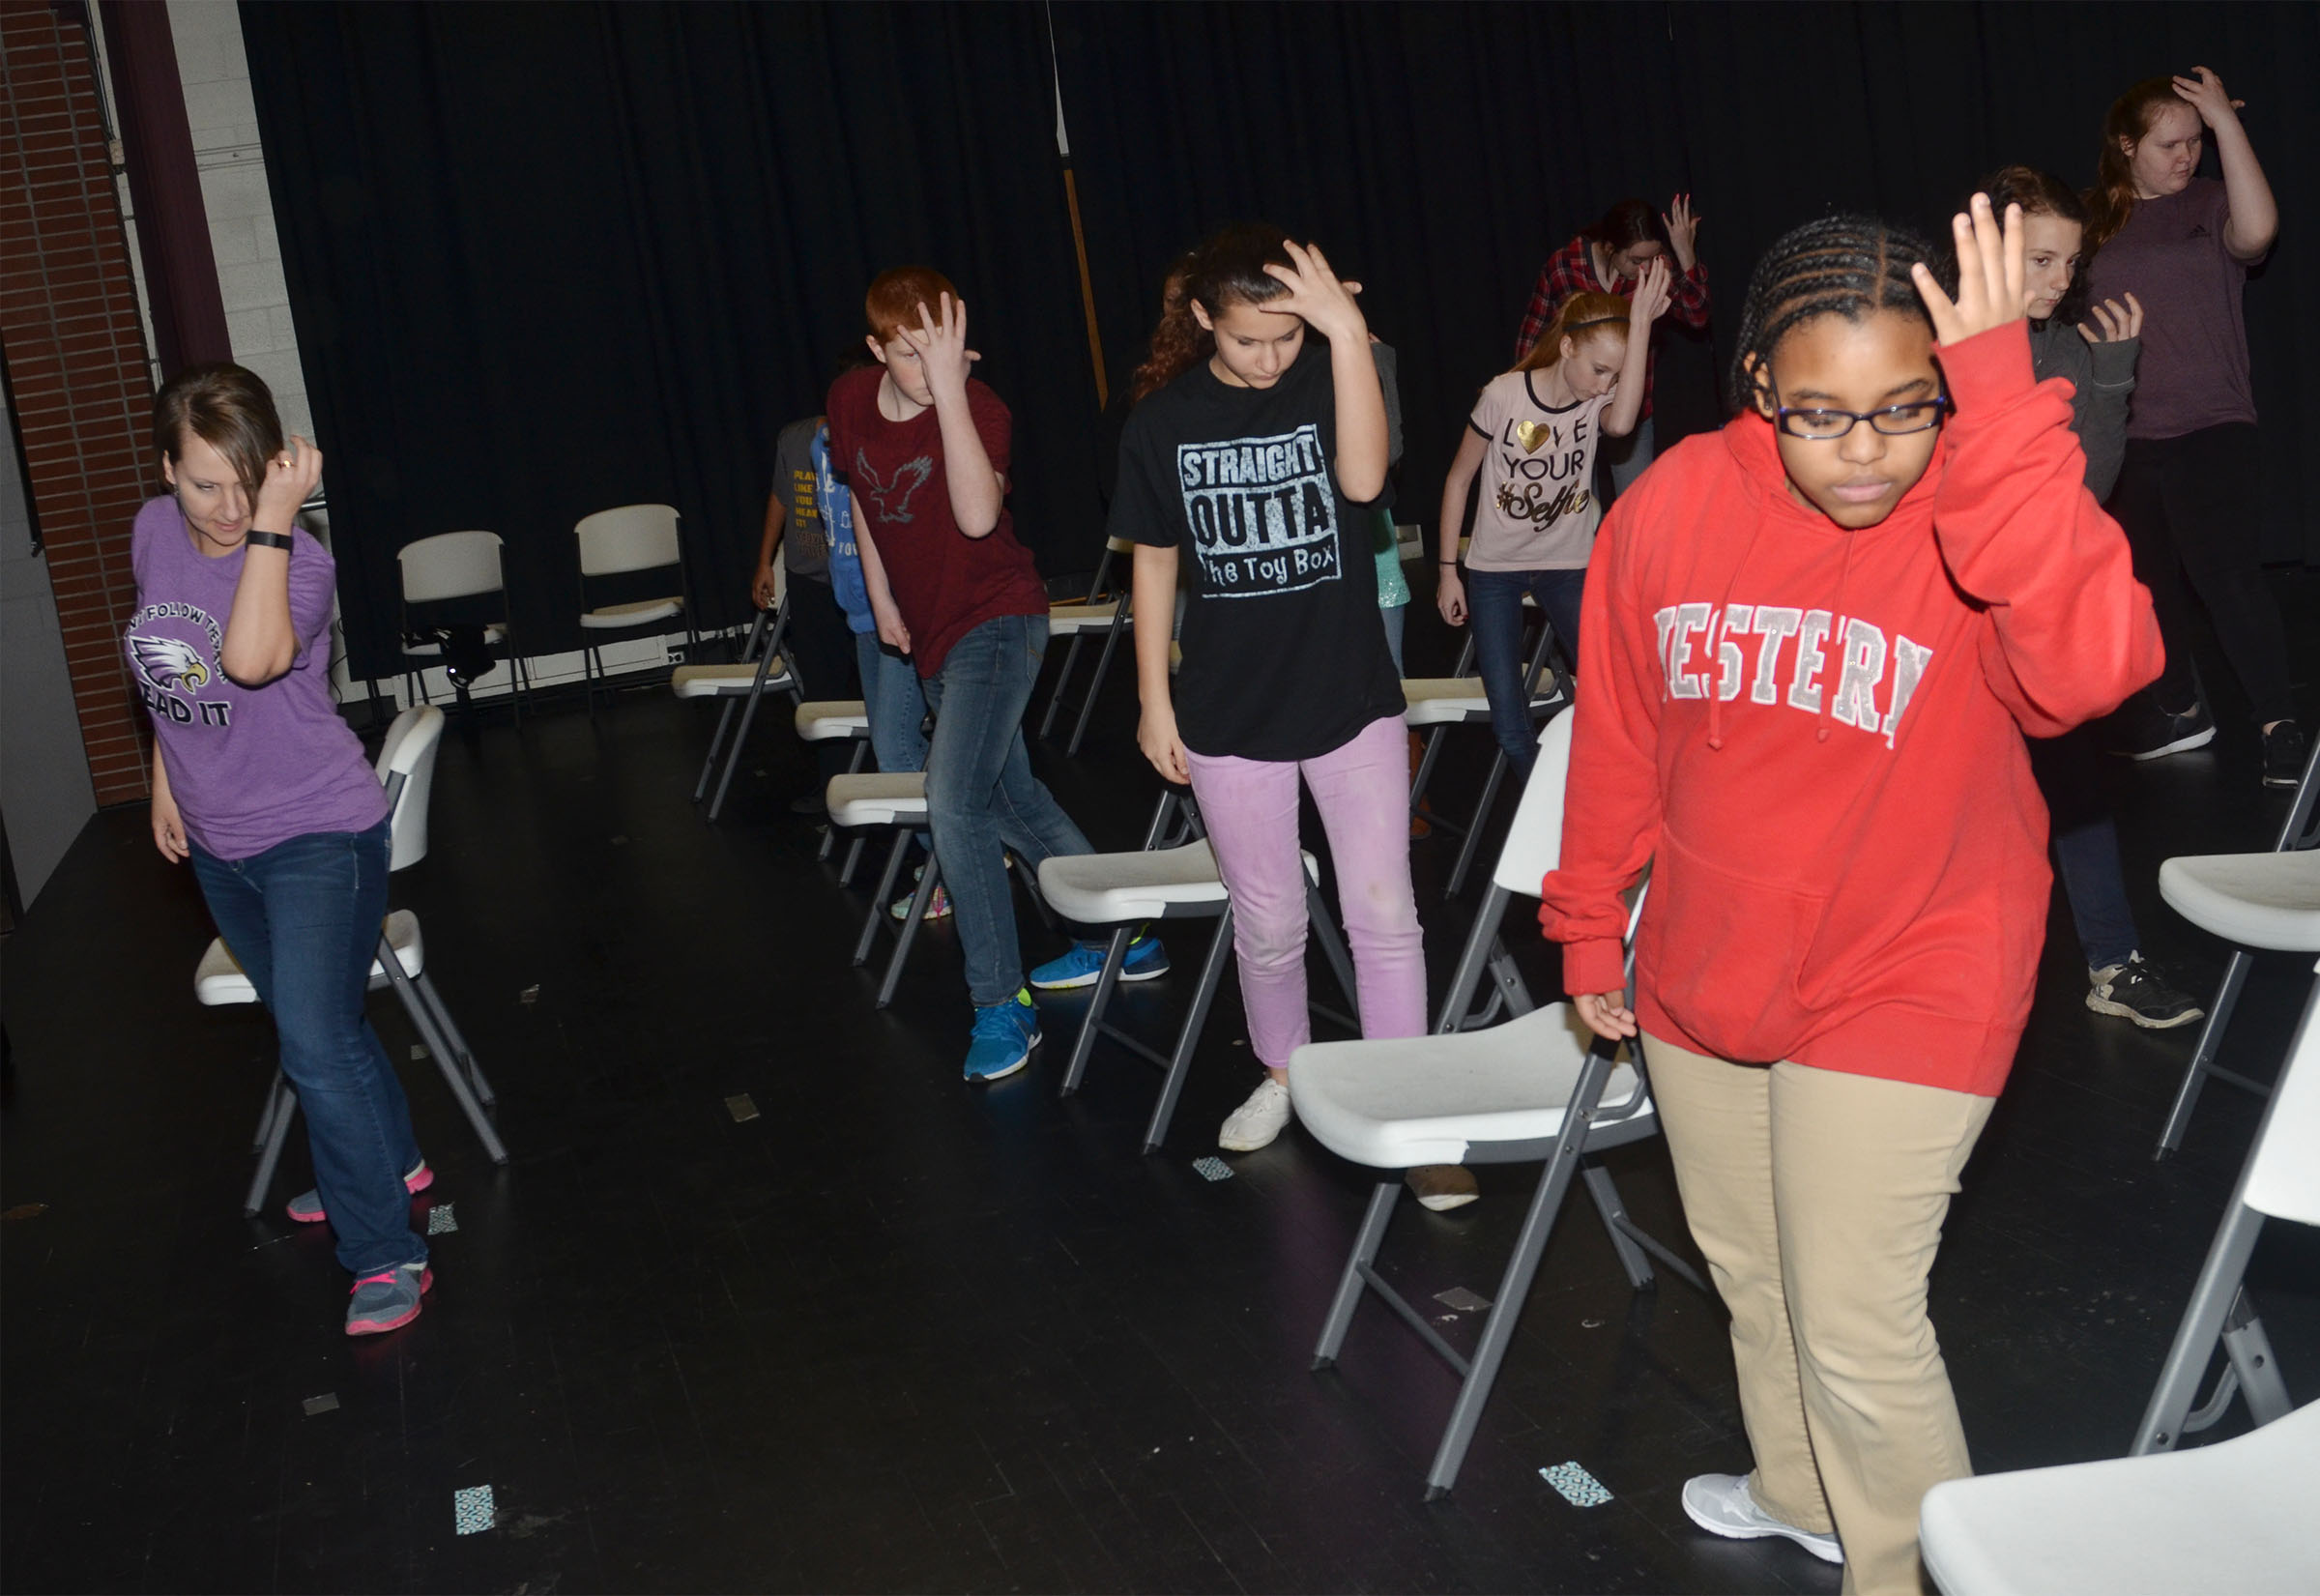 CMS choir director Jessica Floyd, at left, teaches choreography.